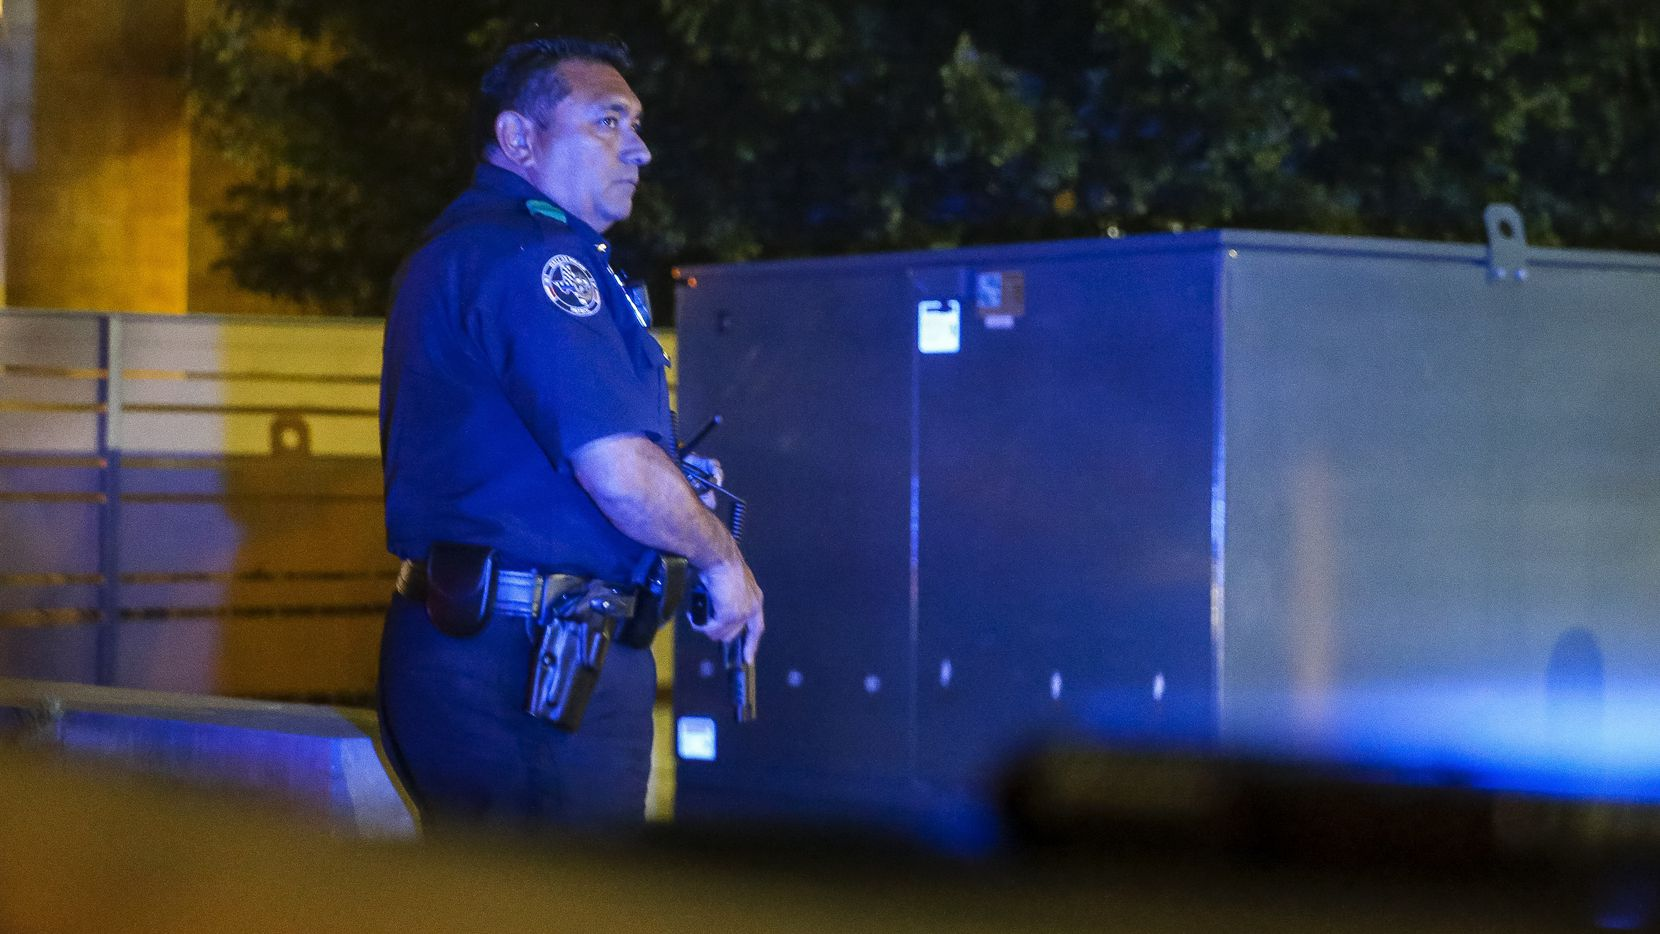 Dallas Police Deputy Chief Israel Herrera looks to a fellow officer during a felony traffic stop after seeing gunshots fired from a vehicle in downtown Dallas on Friday, Sept. 24, 2021.